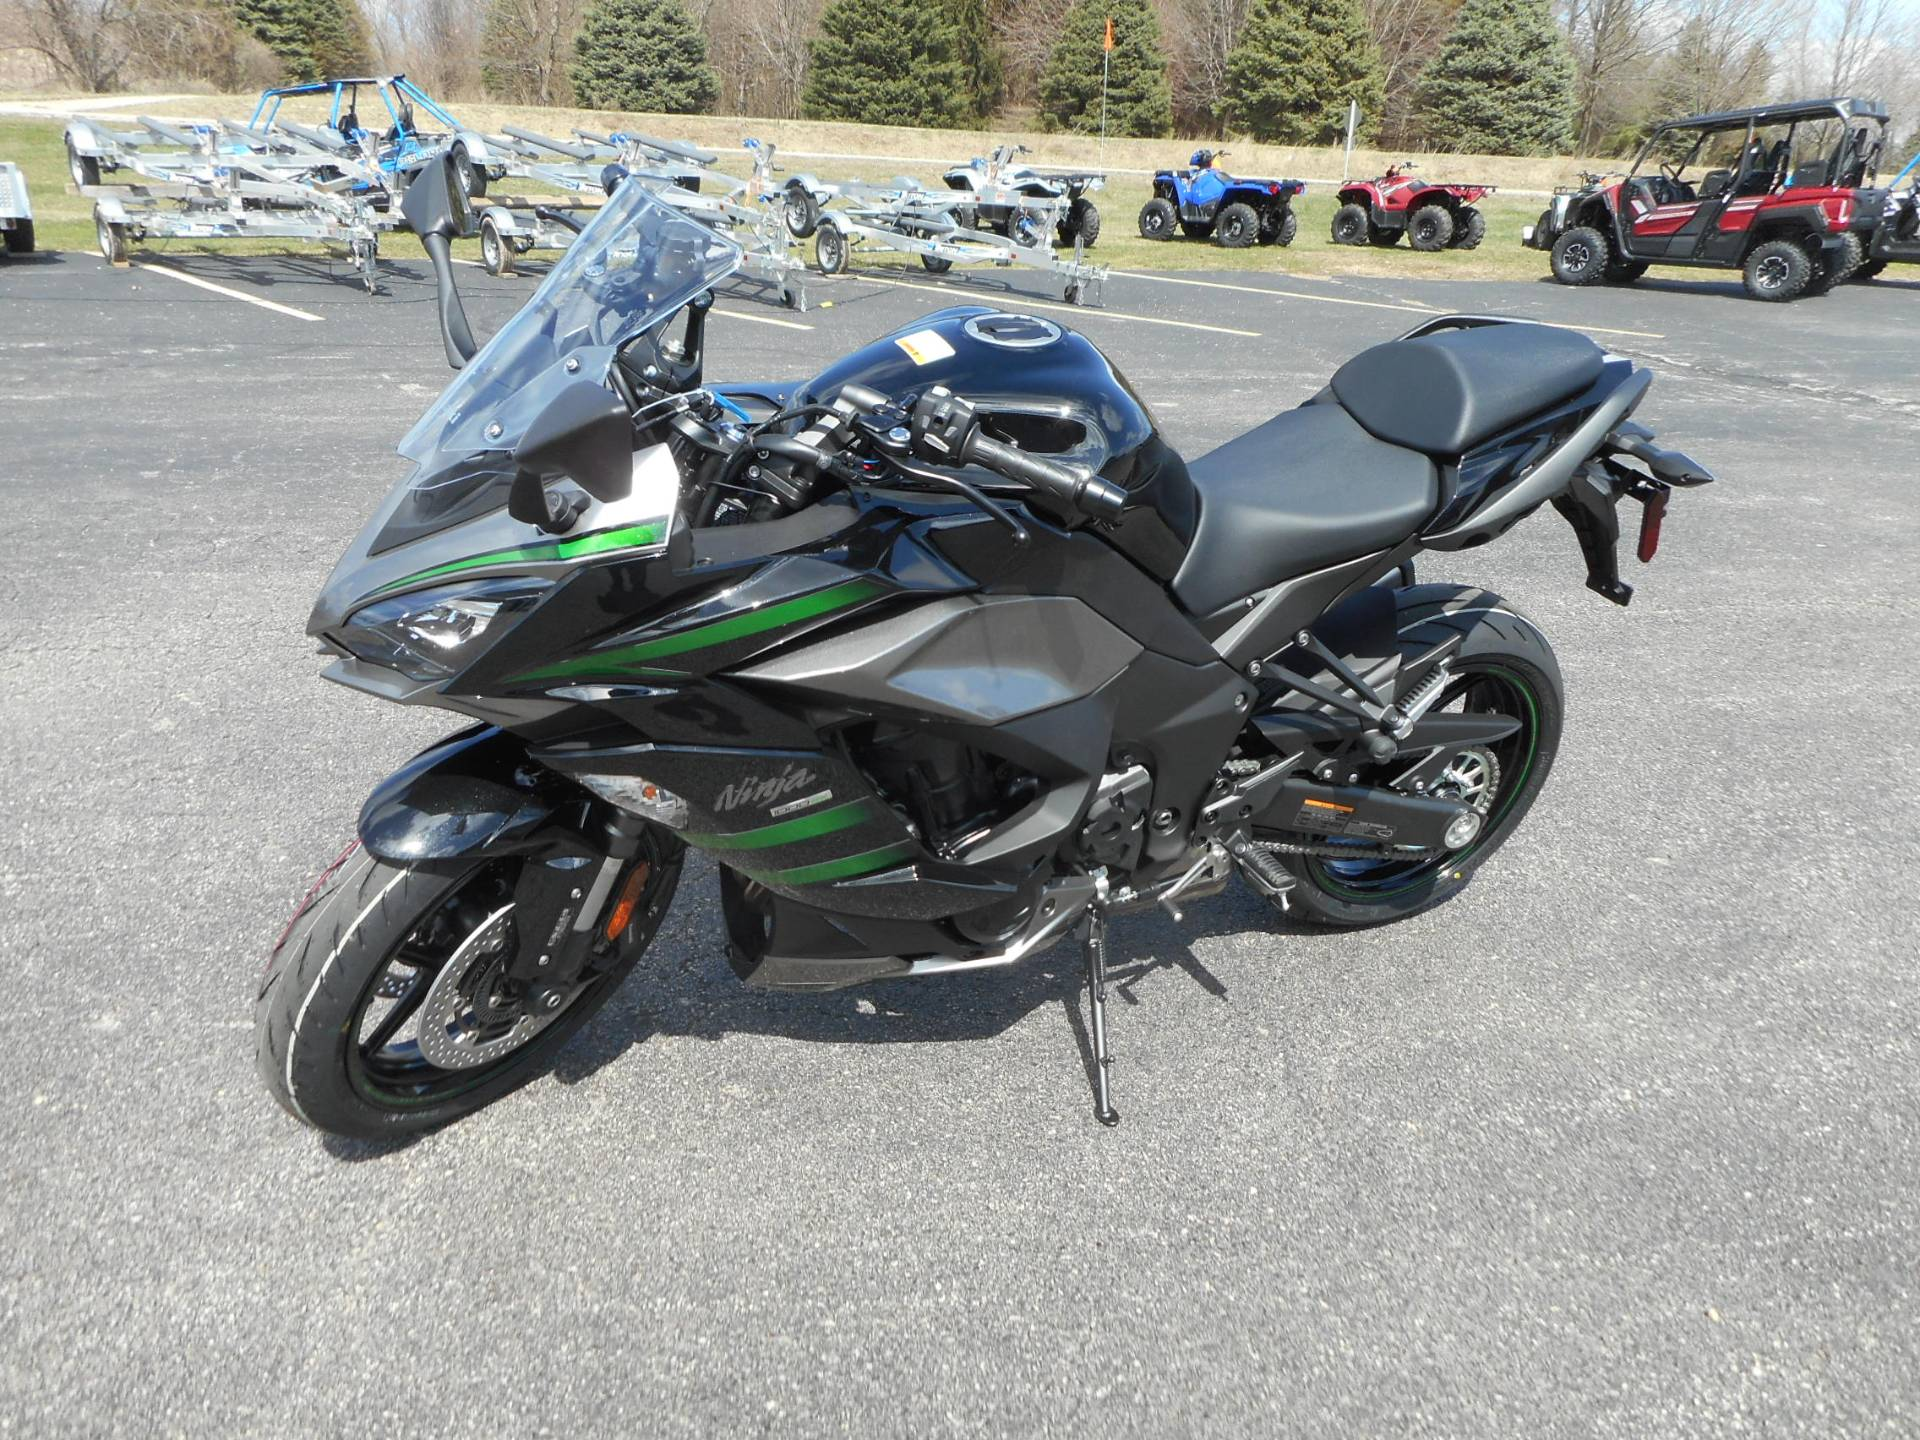 2020 Kawasaki Ninja 1000SX in Belvidere, Illinois - Photo 3